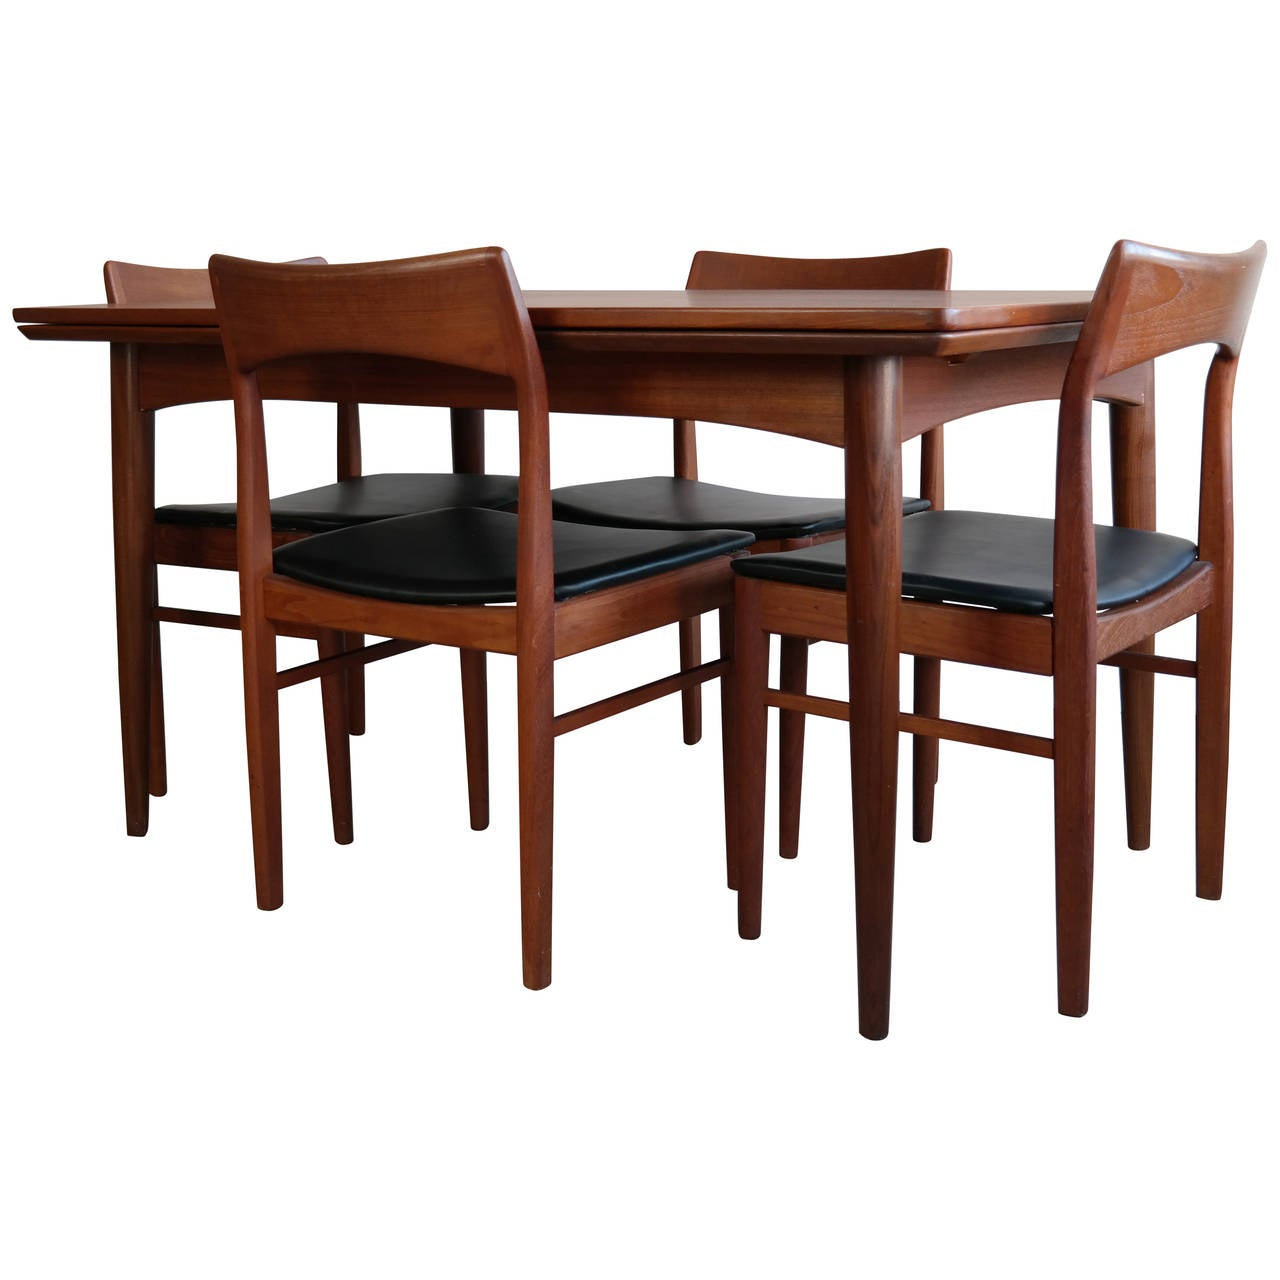 Danish Modern Dining Set In Teak At 1stdibs